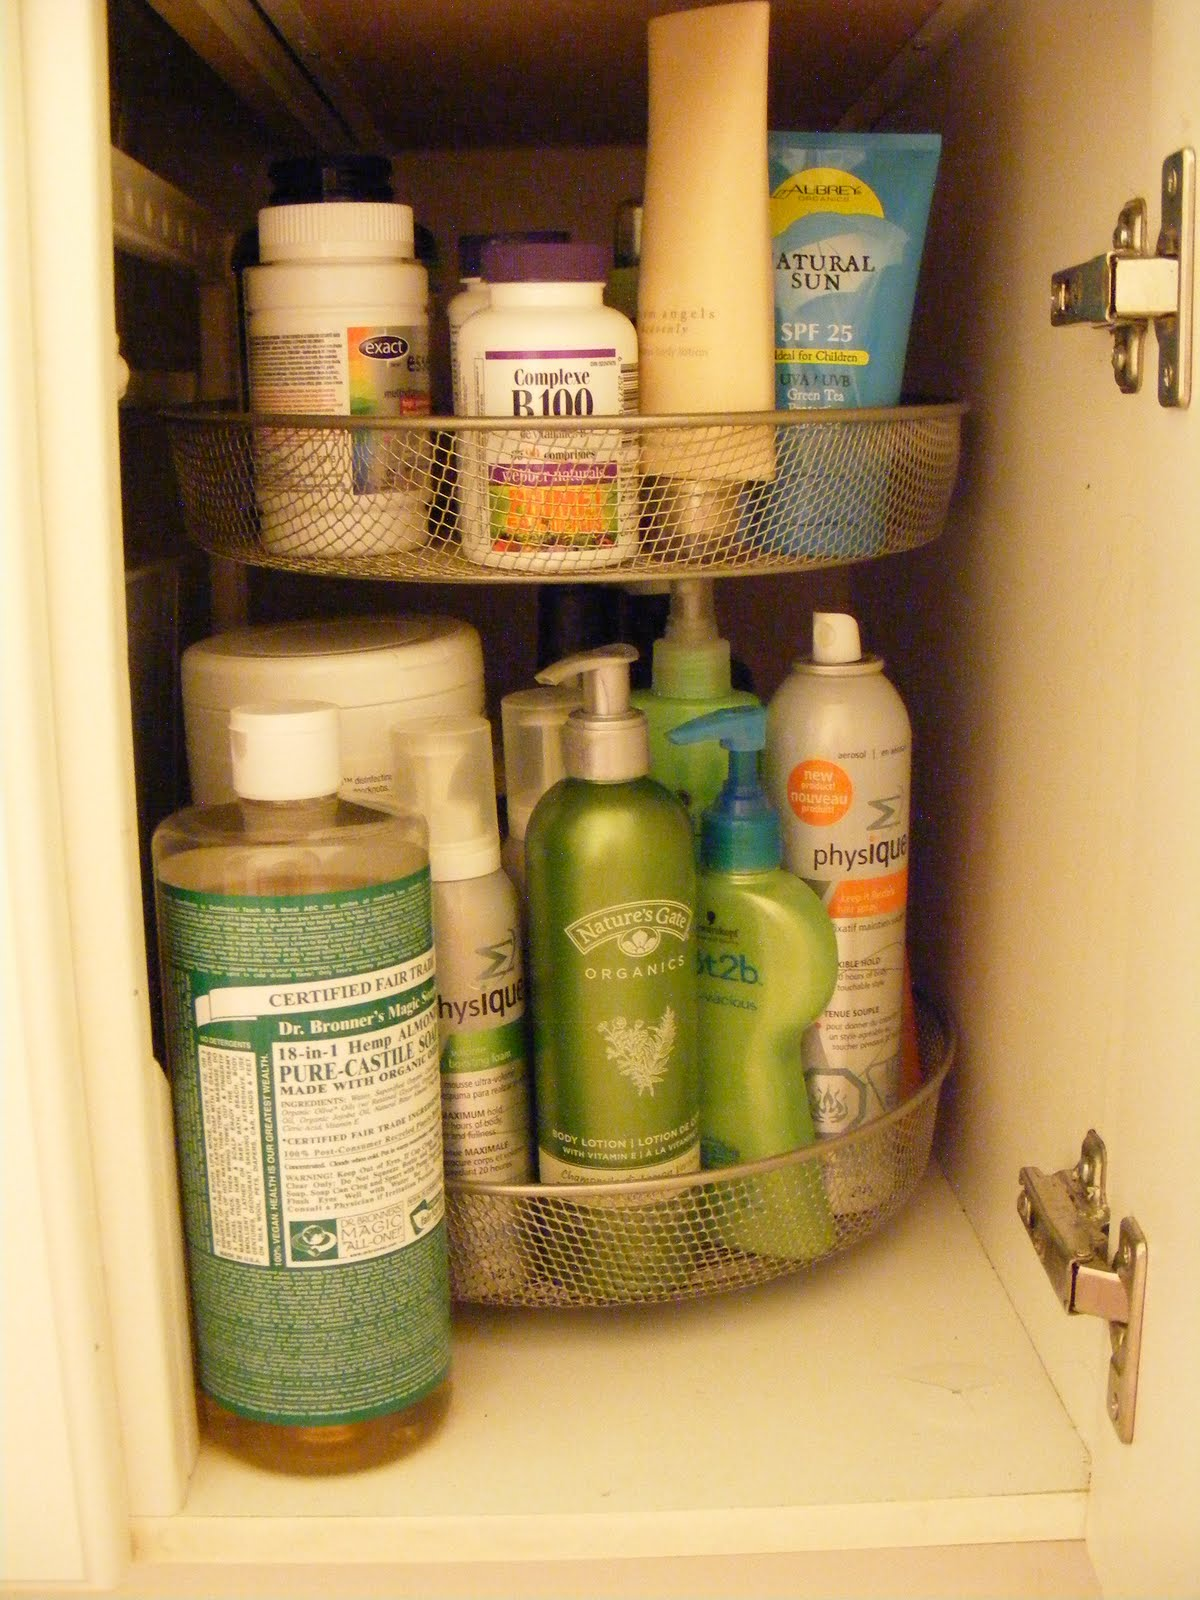 Bathroom Products Use A Lazy Susan Under The Bathroom Sink For Organizing